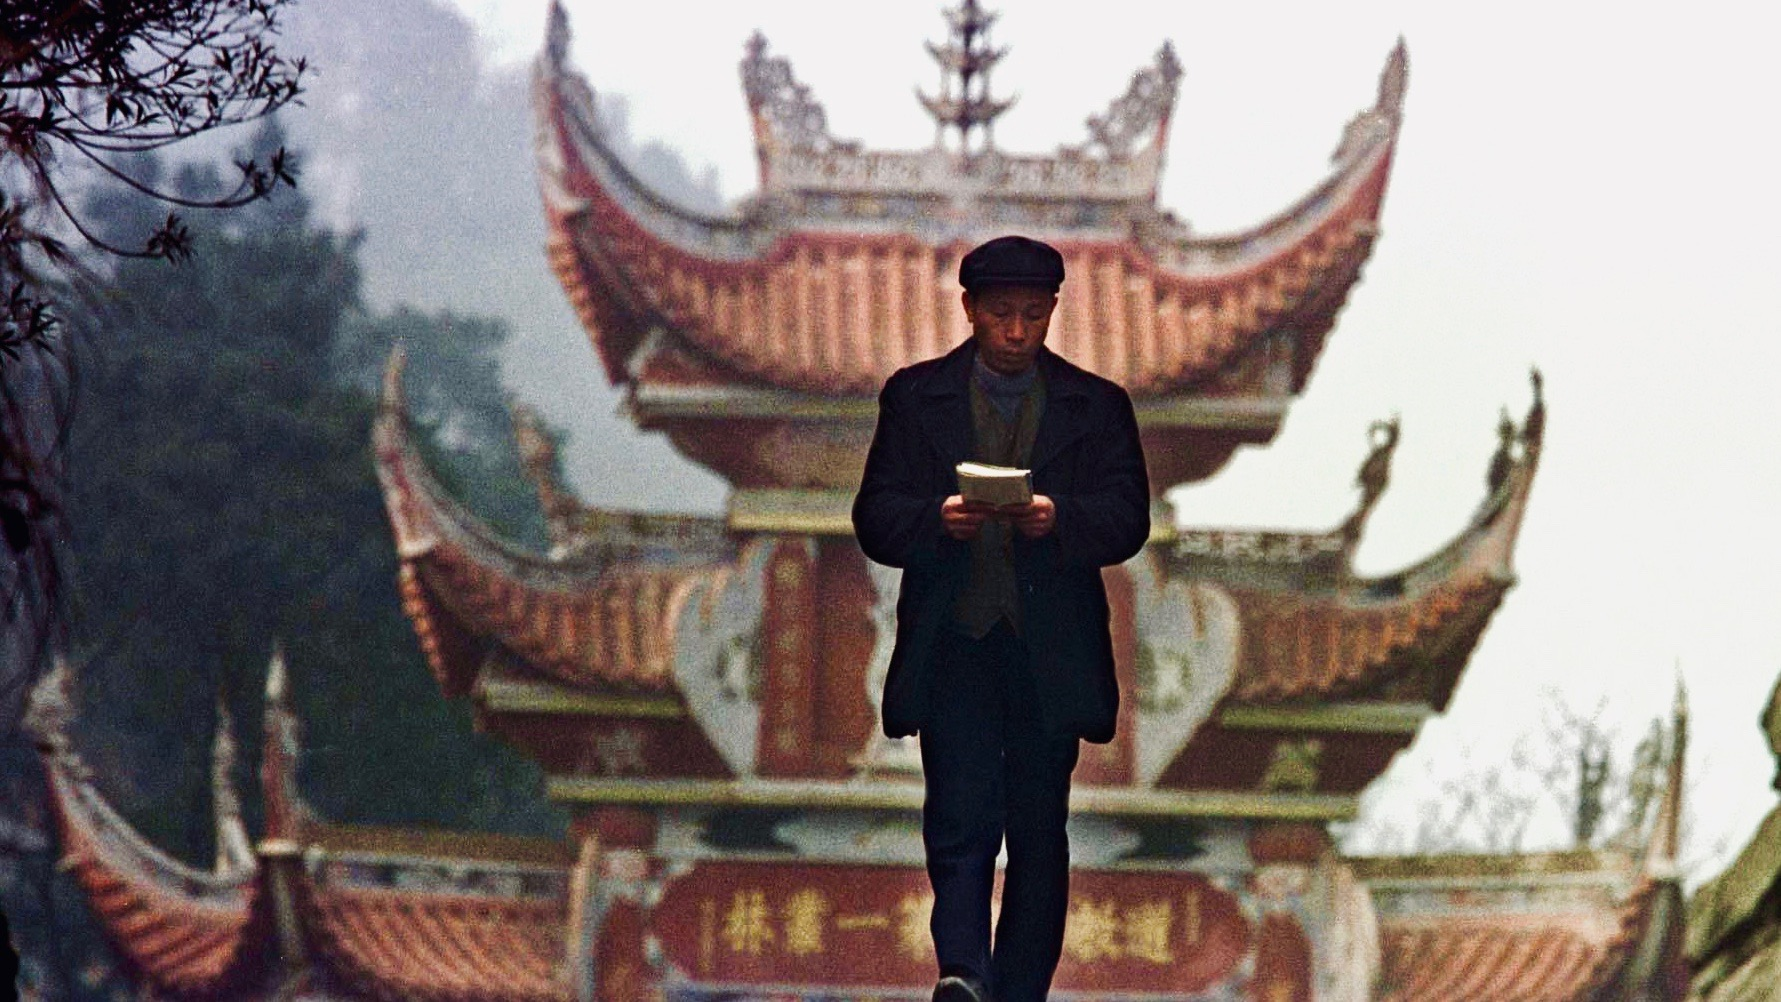 Man walking with a book.